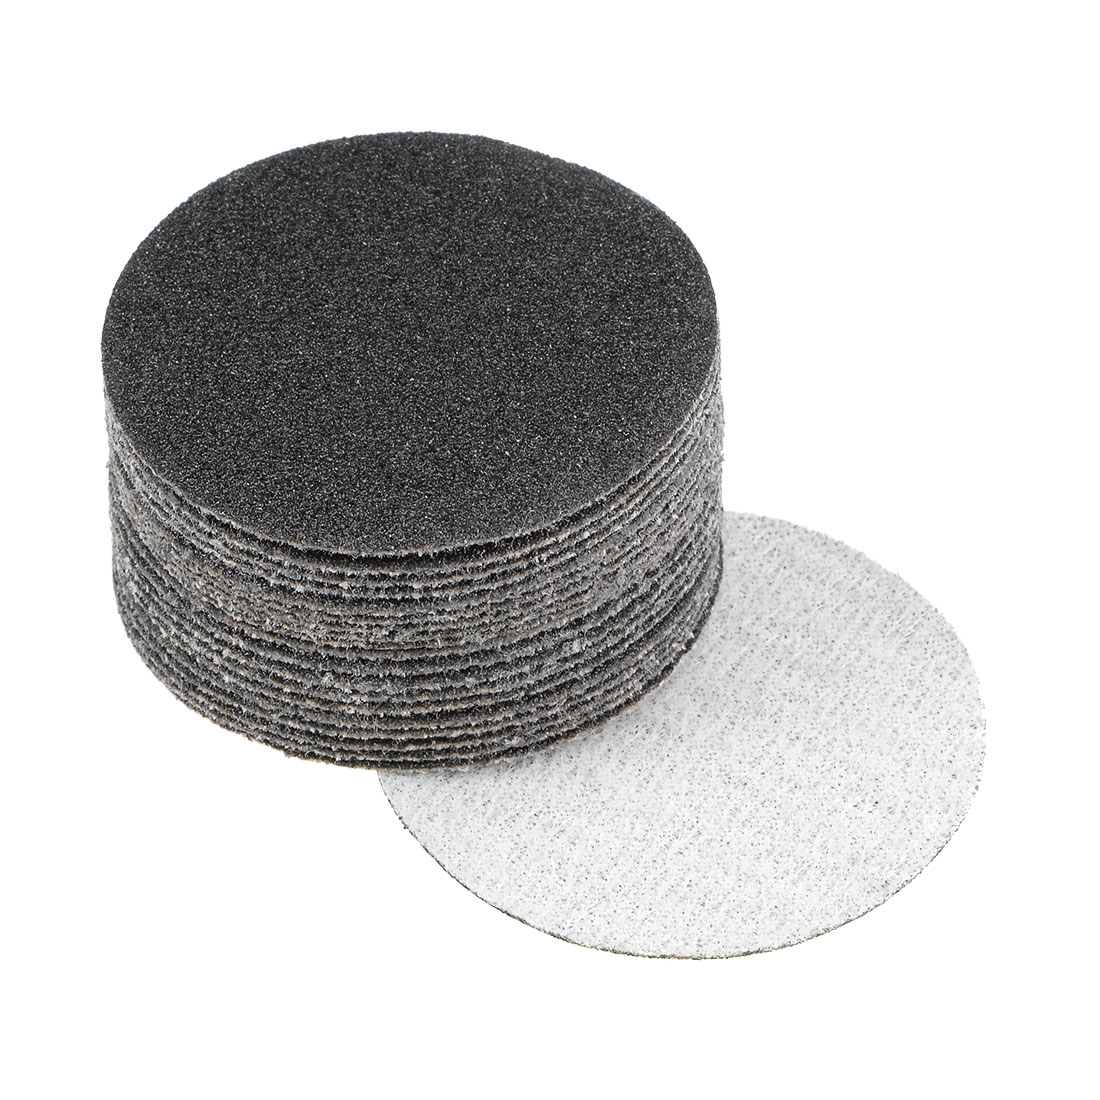 2 inch Wet Dry Discs 100 Grit Hook and Loop Sanding Disc Silicon Carbide 20pcs